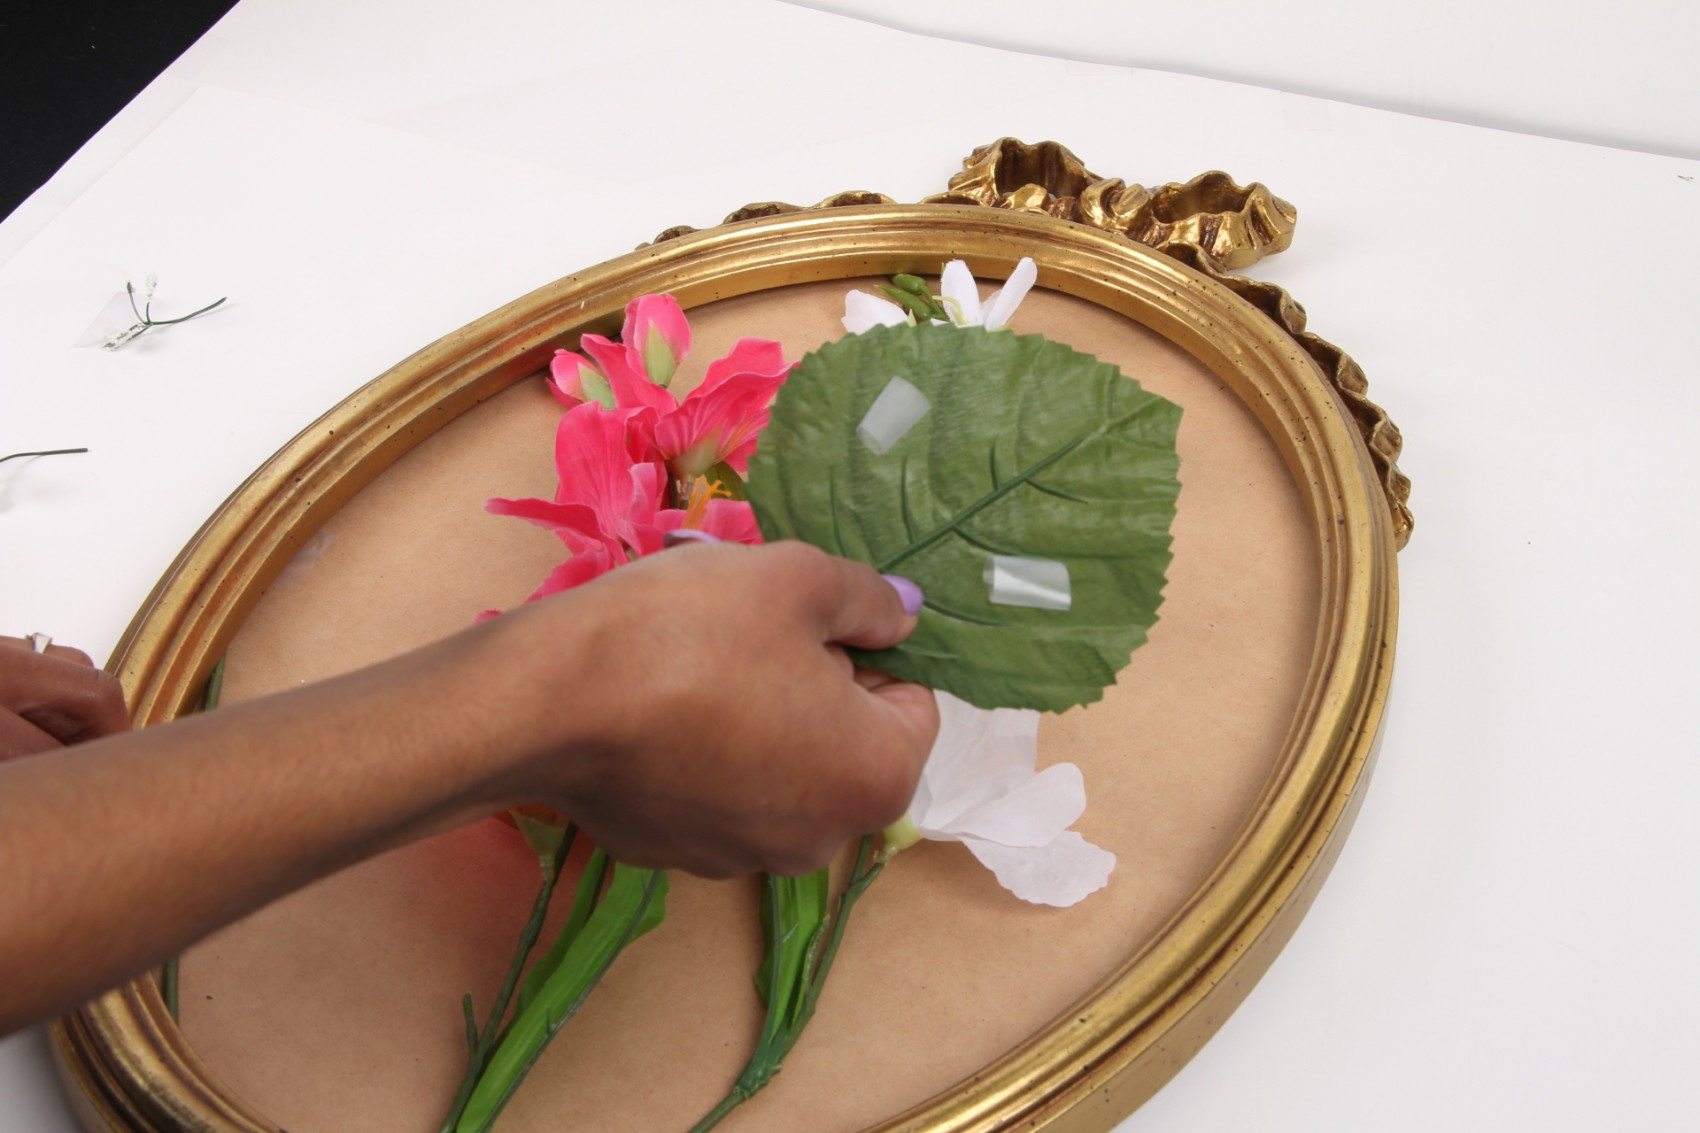 hands taping pink and white silk flowers and leaves to mirror base